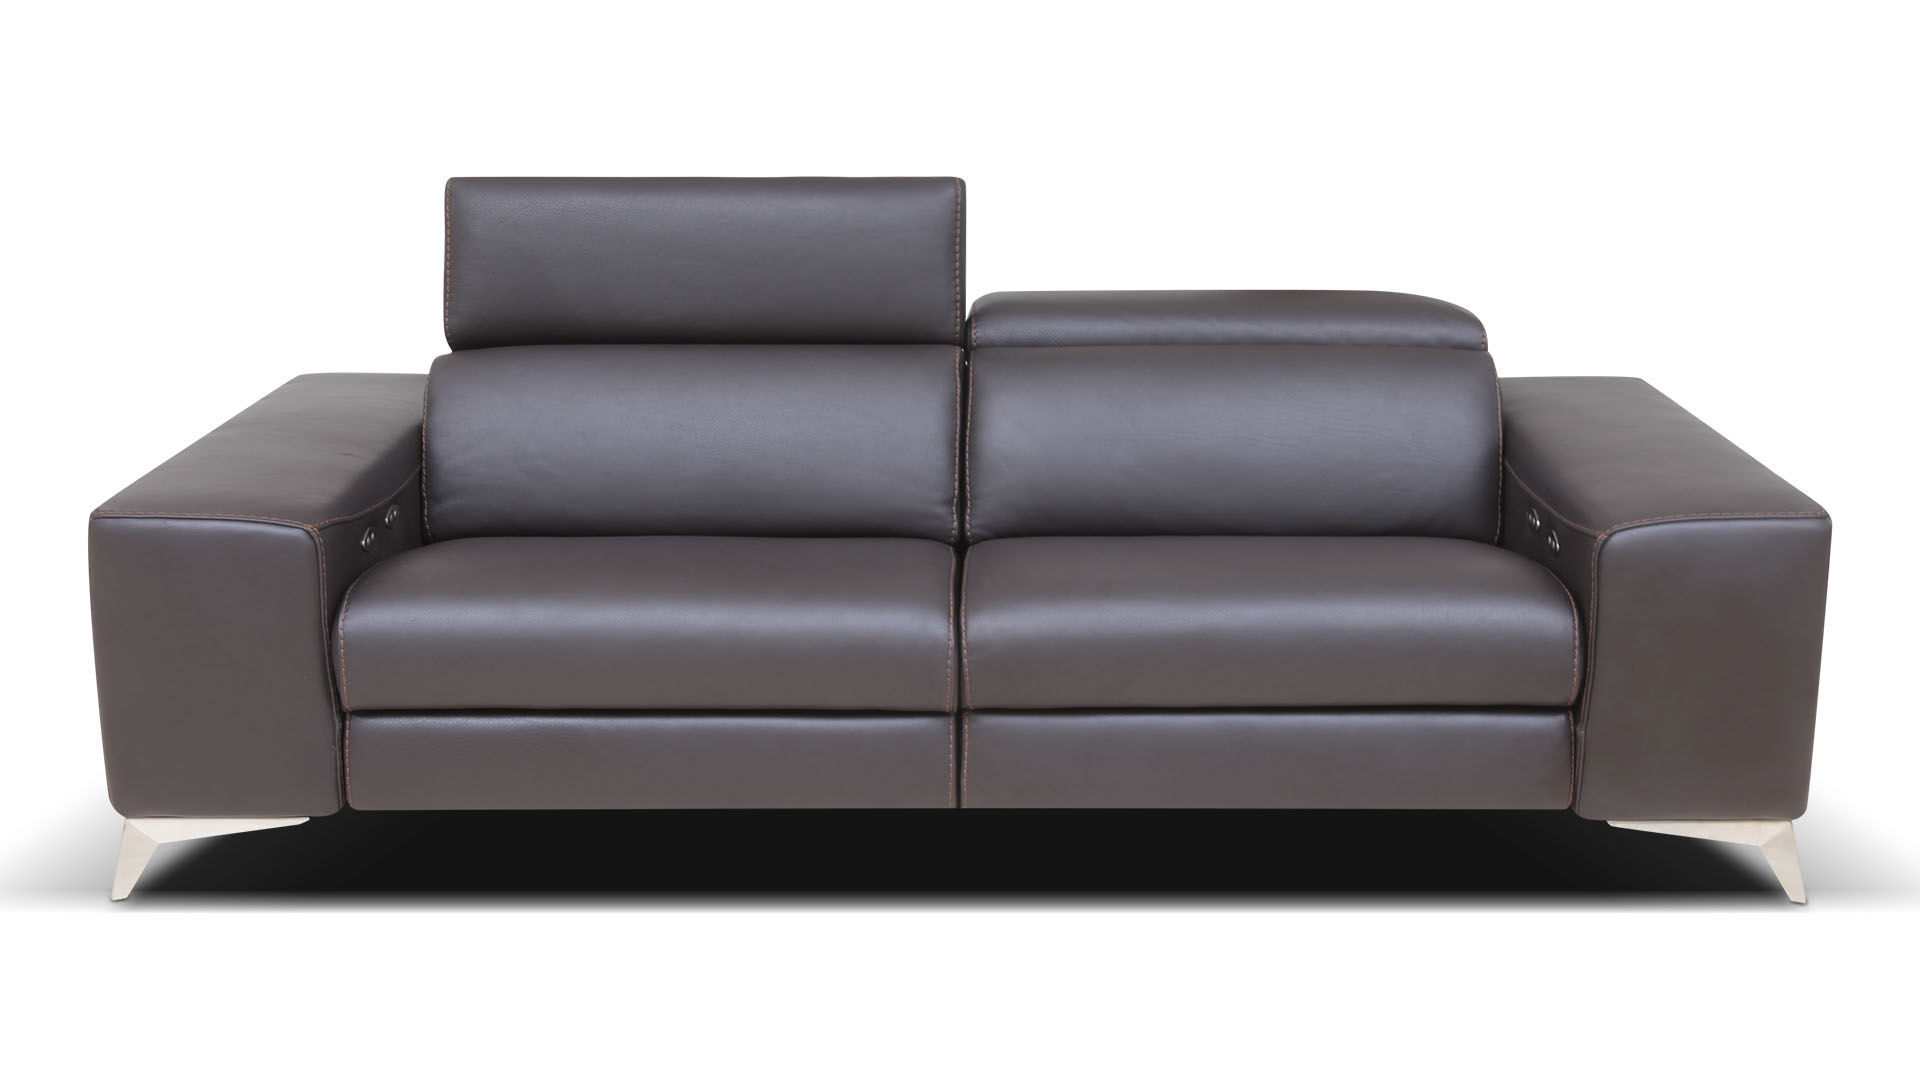 Enjoyable Contemporary Sofa Leather Reclining With Headrest Caraccident5 Cool Chair Designs And Ideas Caraccident5Info